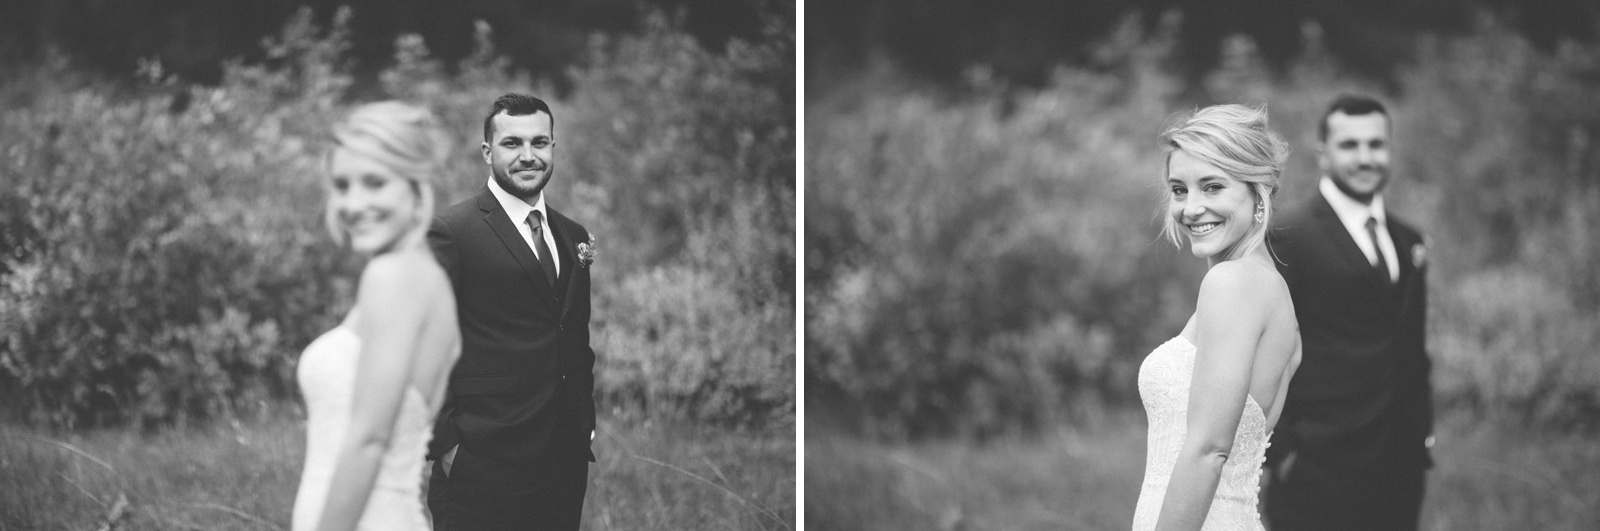 152-beautiful-bride-and-groom-photojournalist-portraits-at-elopement-wedding-in-durango-colorado-forest